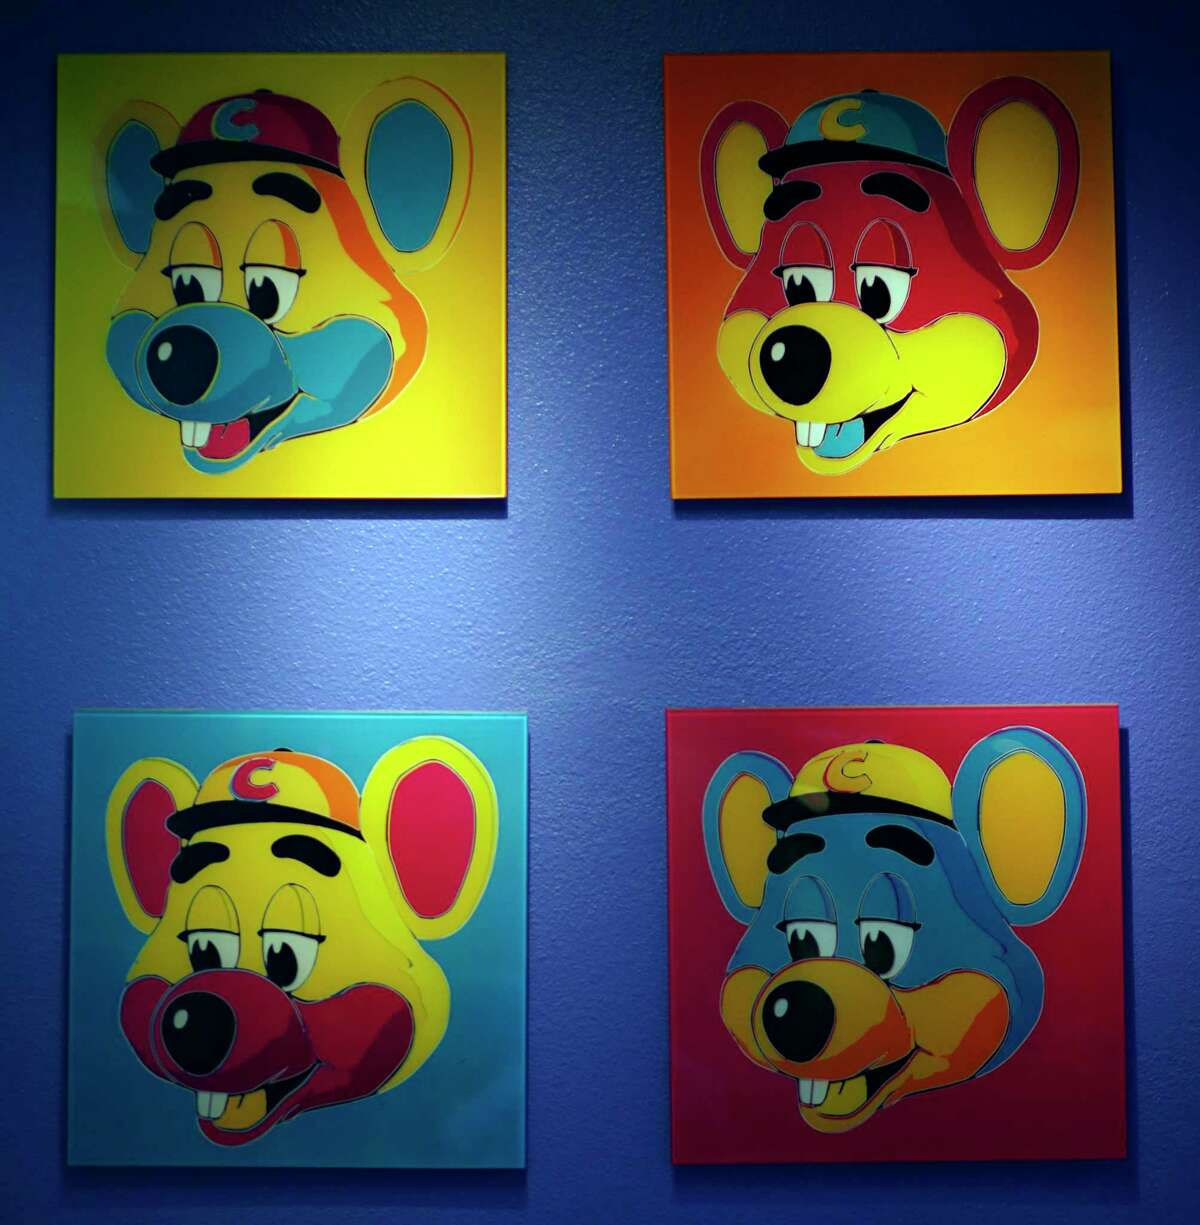 FILE - This Jan. 16, 2014 file photo shows paintings hanging on a wall at Chuck E. Cheese's in Dallas. Chuck E. Cheese pizzeria, that Mecca of fun for children but the bane of many parents, is filing for bankruptcy protection. CEC Entertainment Inc. said Thursday, Jan. 25, 2020, it was filing for voluntary protection under Chapter 11 a€œin order to overcome the financial strain resulting from prolonged, COVID-19 related venue closures.a€ (G.J. McCarthy/The Dallas Morning News via AP)